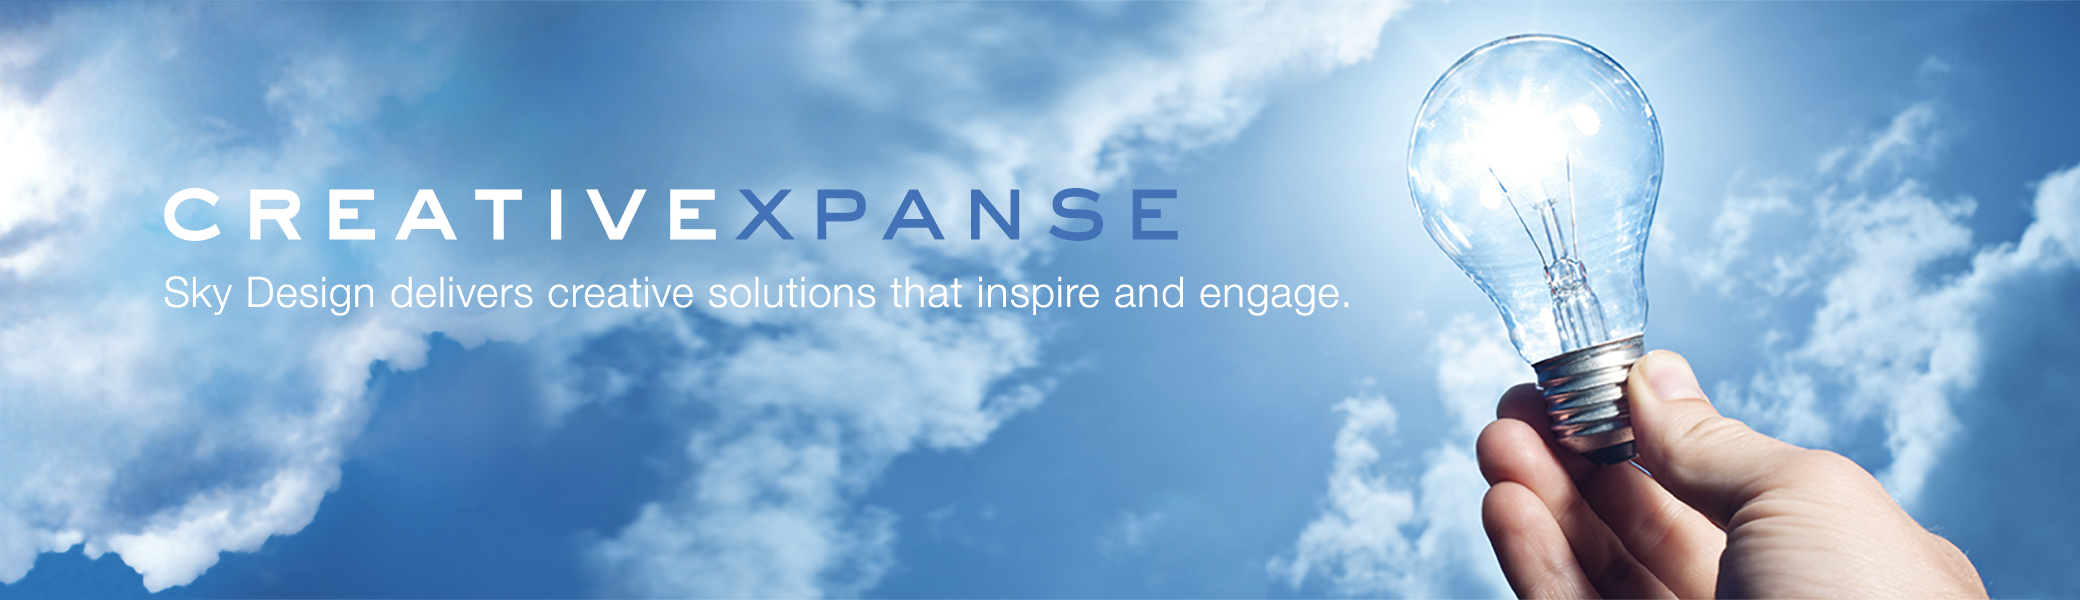 Sky Design delivers creative solutions that inspire and engage.